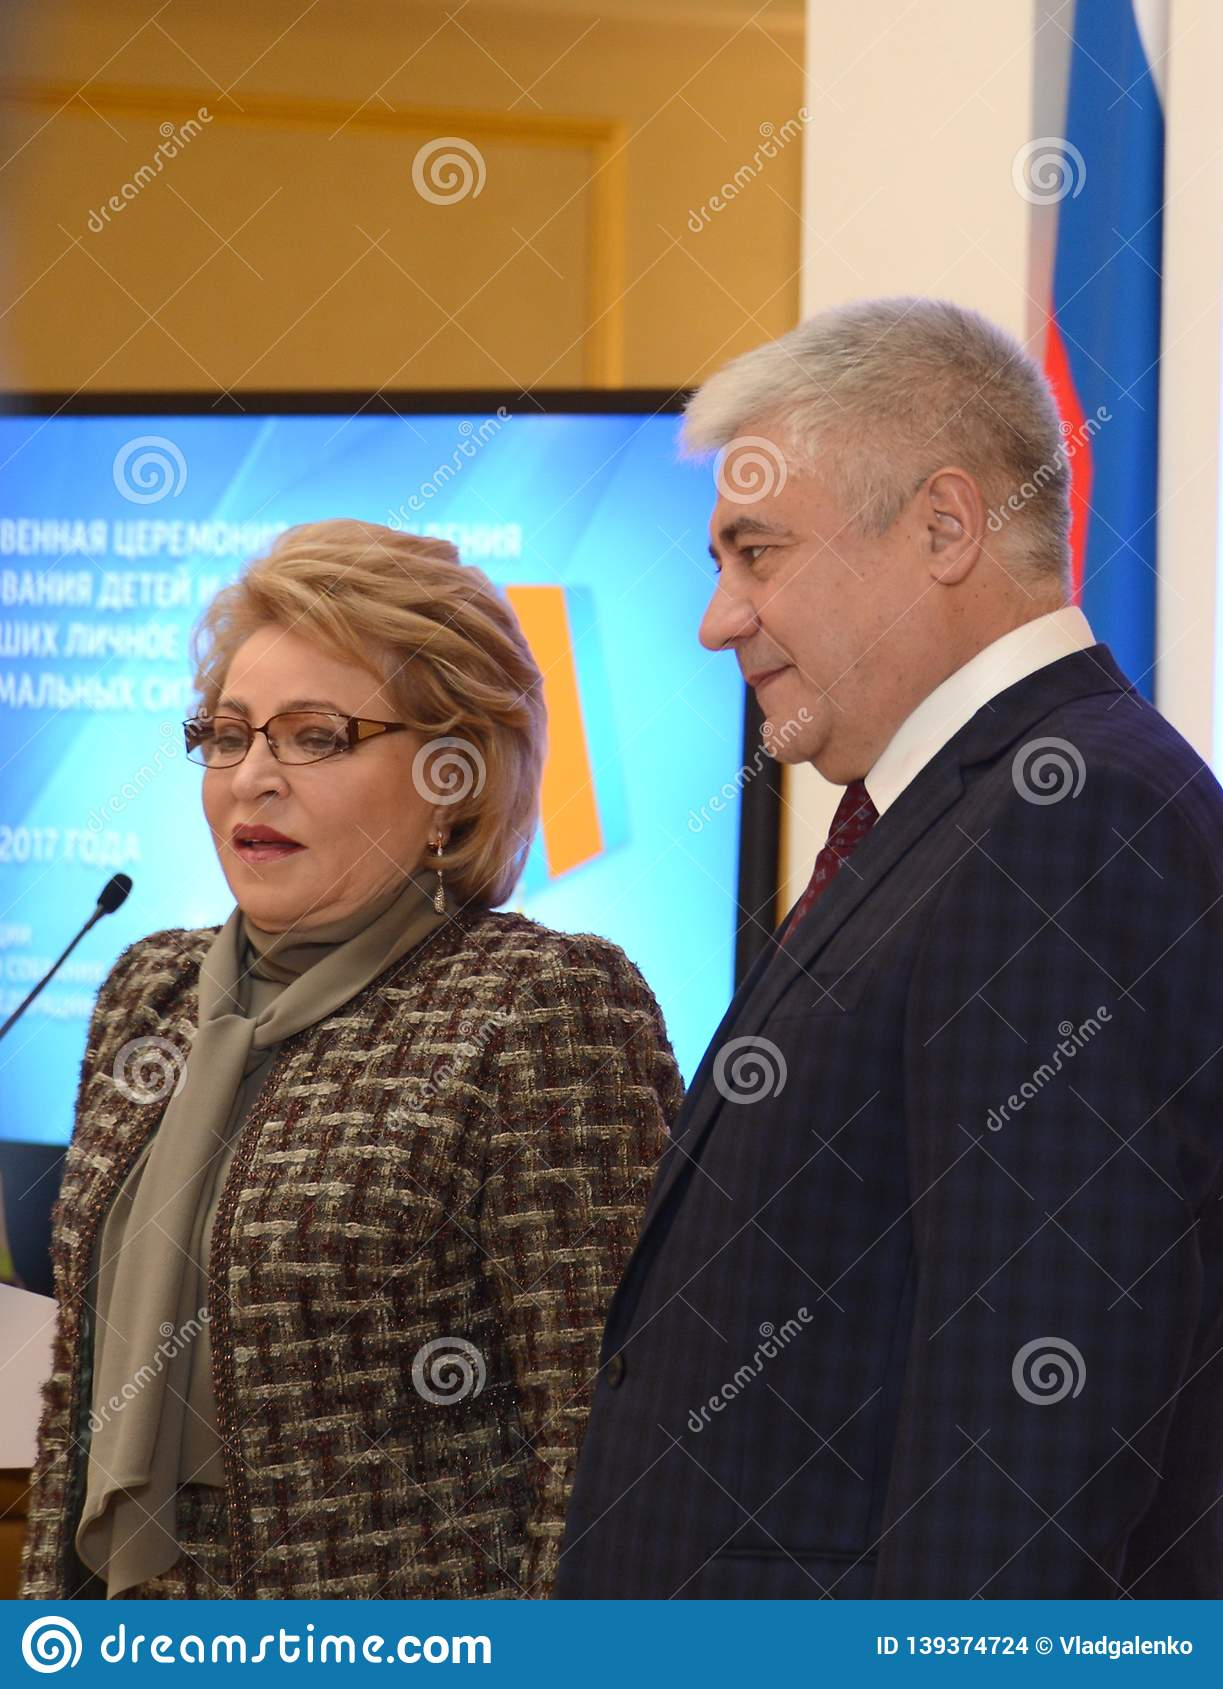 Chairman of the Federation Council of the Federal Assembly Valentina Matvienko Minister of internal Affairs Vladimir Kolokoltsev